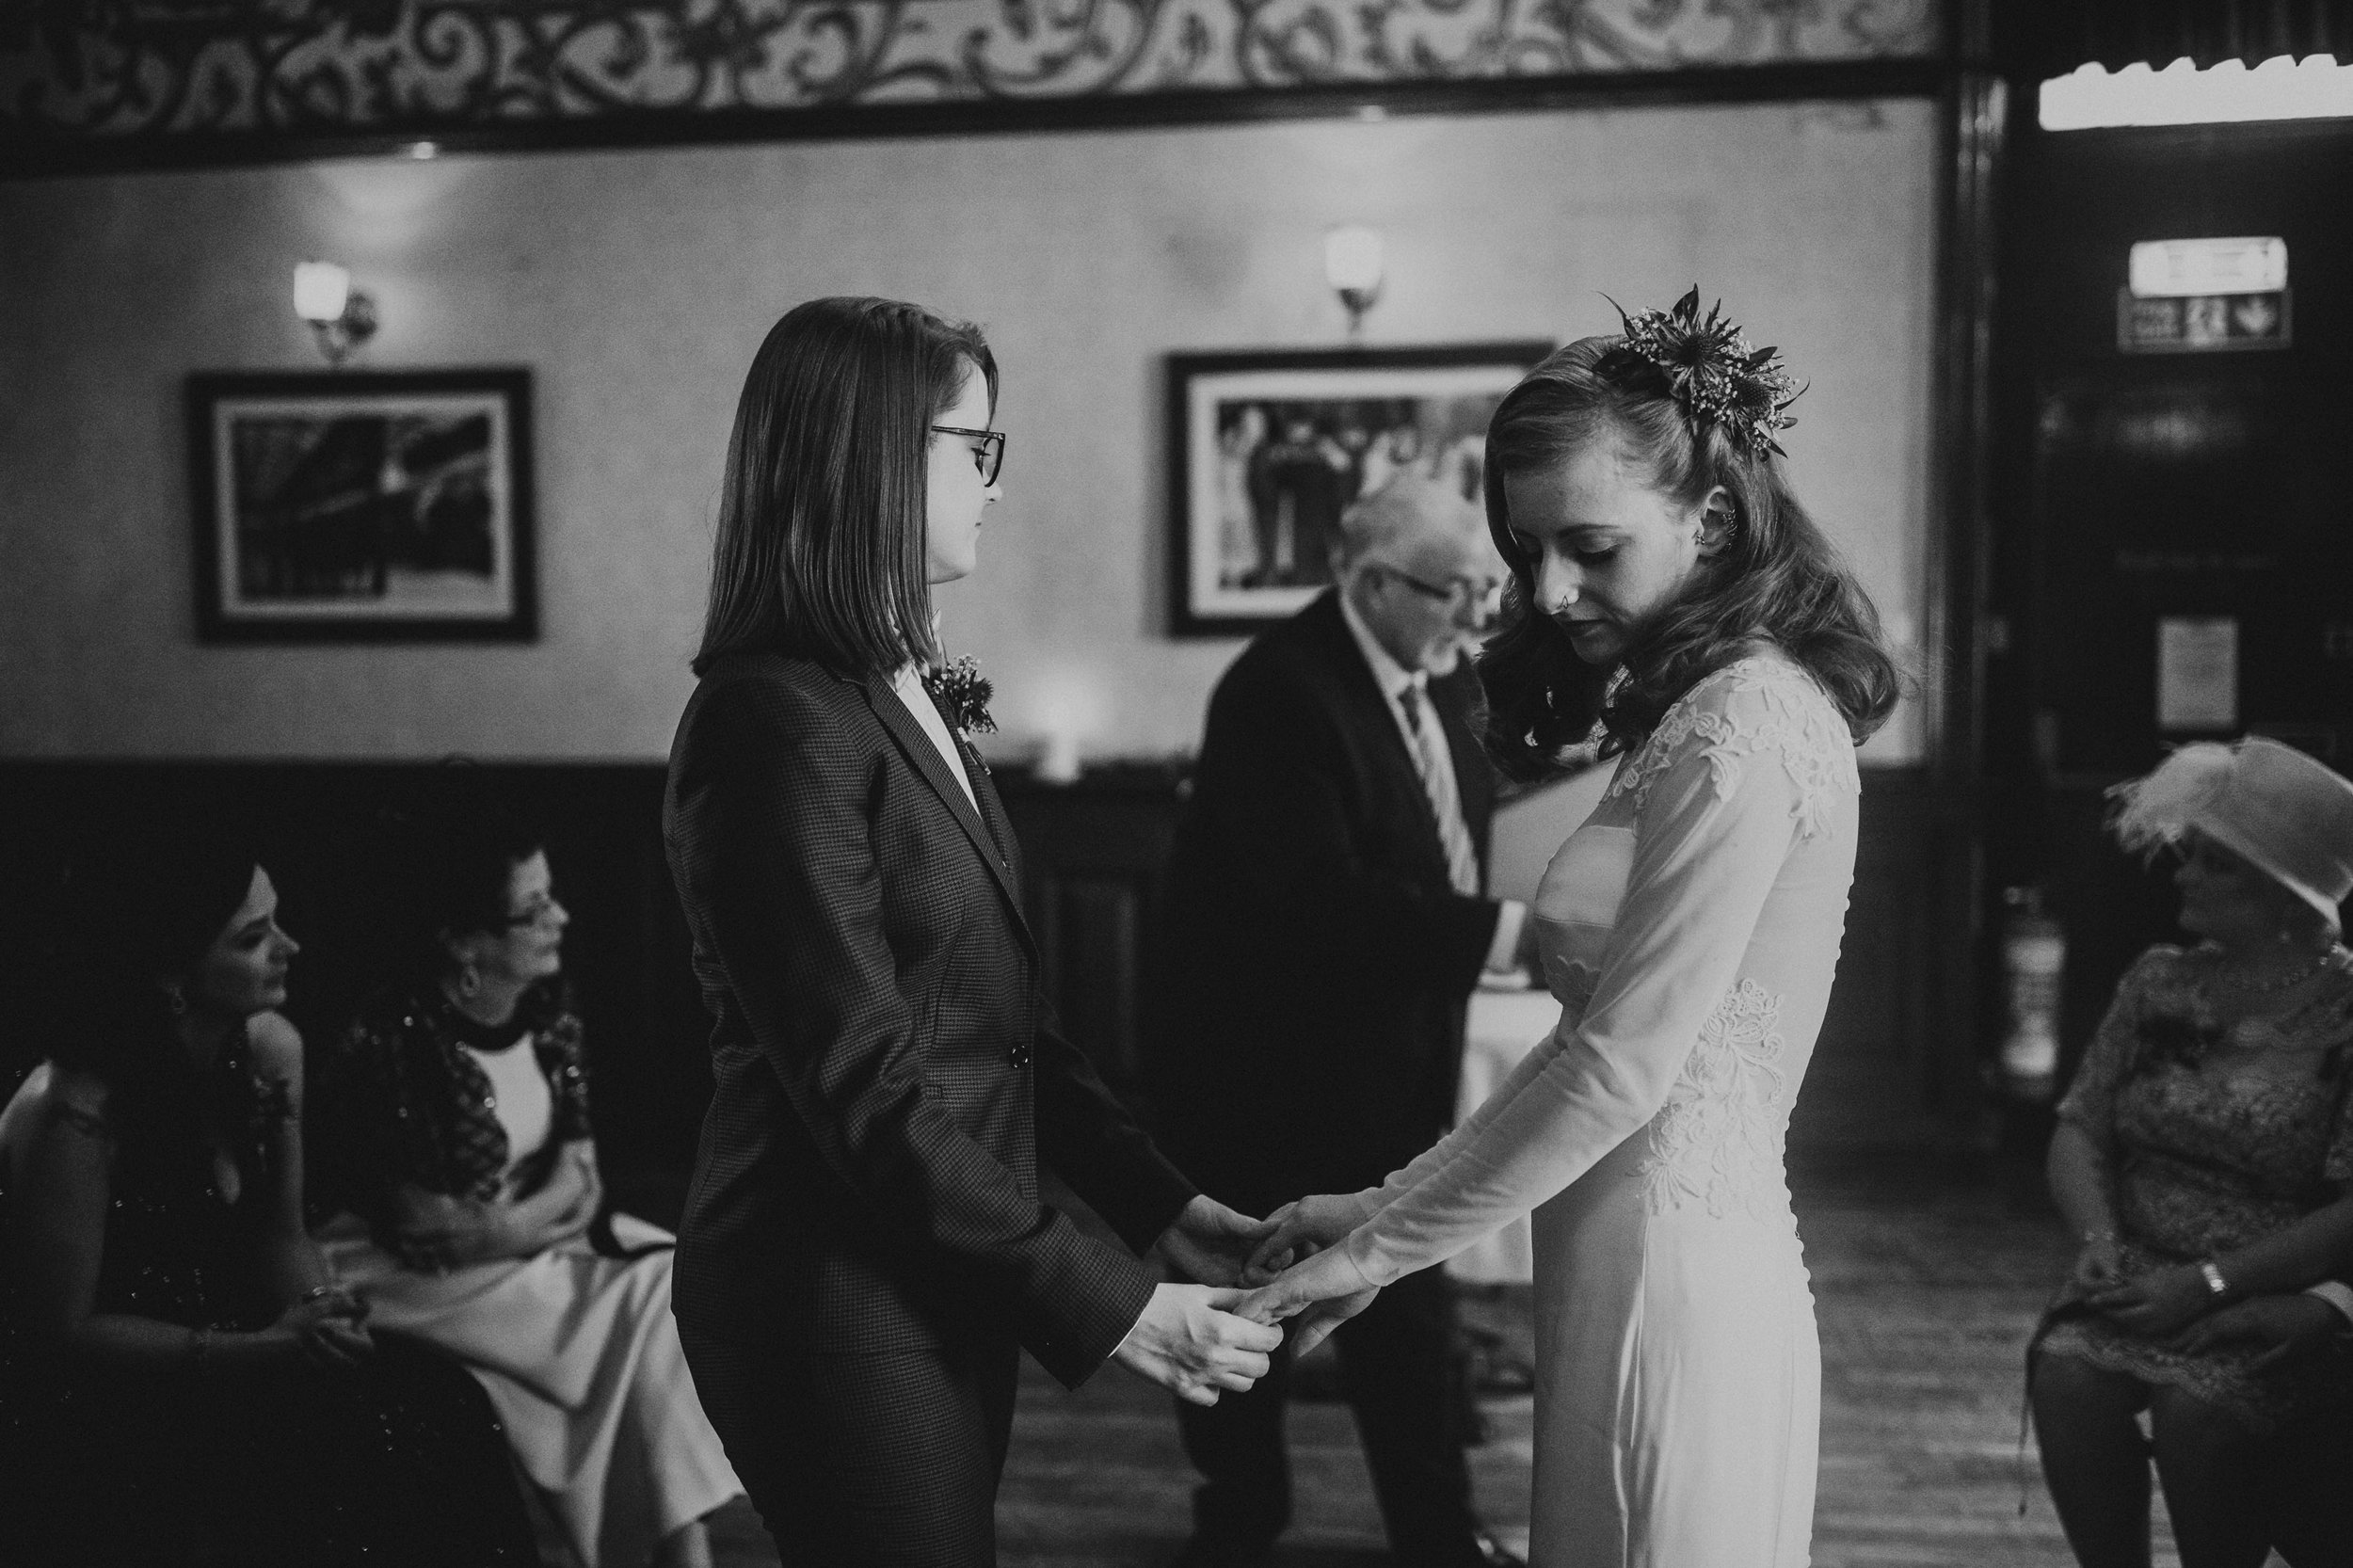 SAME_SEX_WEDDING_PHOTOGRAPHER_SLOANS_GLASGOW_PJ_PHILLIPS_PHOTOGRAPHY_41.jpg